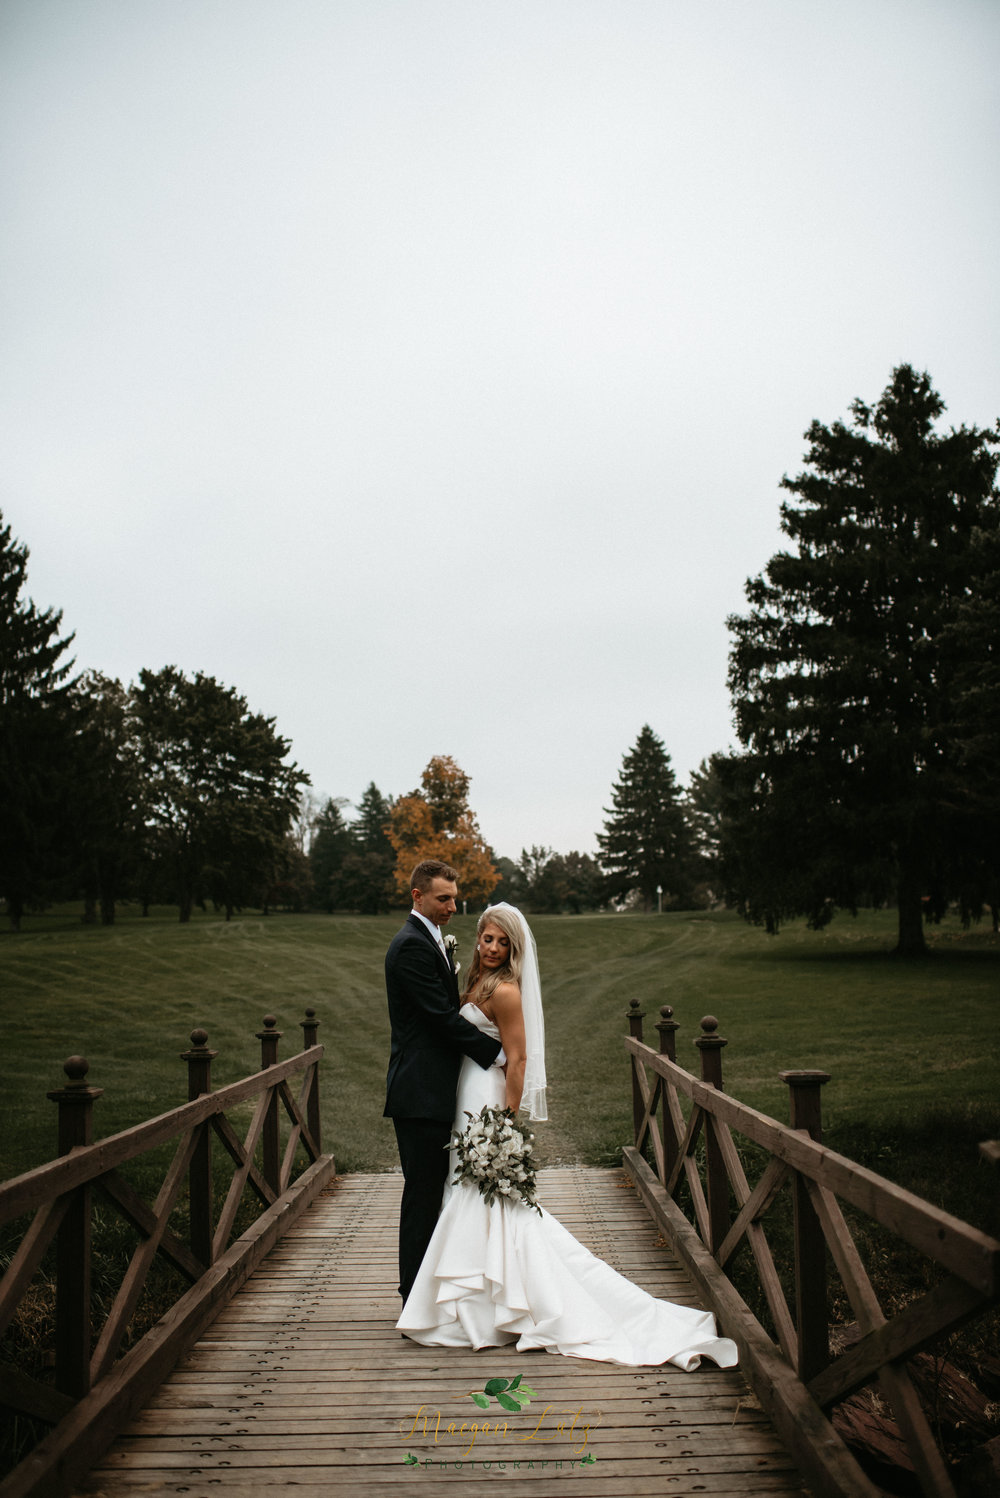 NEPA-Wedding-Photographer-at-the-Barn-at-Frosty-Valley-Danville-PA-89.jpg